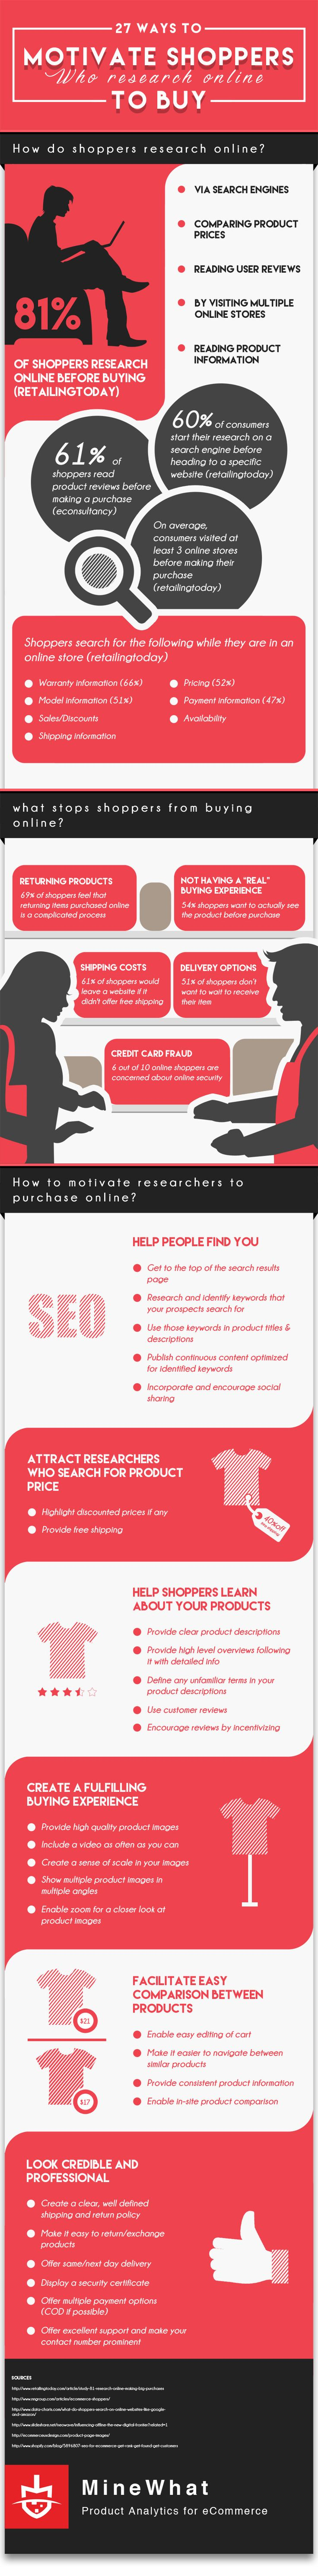 Infographic: 27 Ways To Motivate Shoppers Who Research Online To Buy: 81% of shoppers research online before making a purchase. Find out what stops them from buying online and what you can do to motivate them to buy.